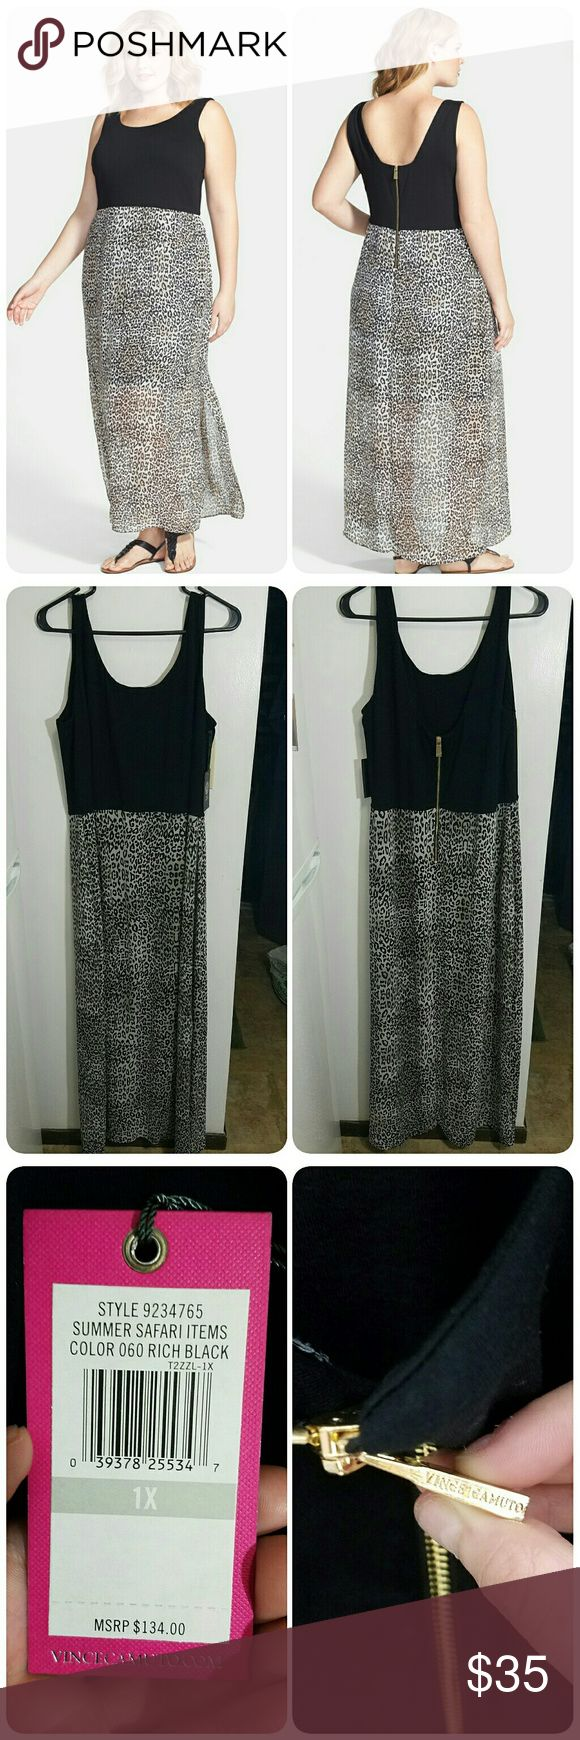 NWT Vince camuto Chiffon Leopard Maxi Dress Vince camuto Chiffon overlay des leopard maxi dress, NWT.  Dress has a lightweight jersey fabrication thar offers effortless warm-weather wear.  The skirt is a fun leopard pattern, and the top is solid black. The dress features a scoop neckline and back.  The dress is a size 1X. The top and skirt lining fit true to size but the sheer leopard print skirt overlay runs small/tight and hugs the body significantly more than photos show or imply. Vince…